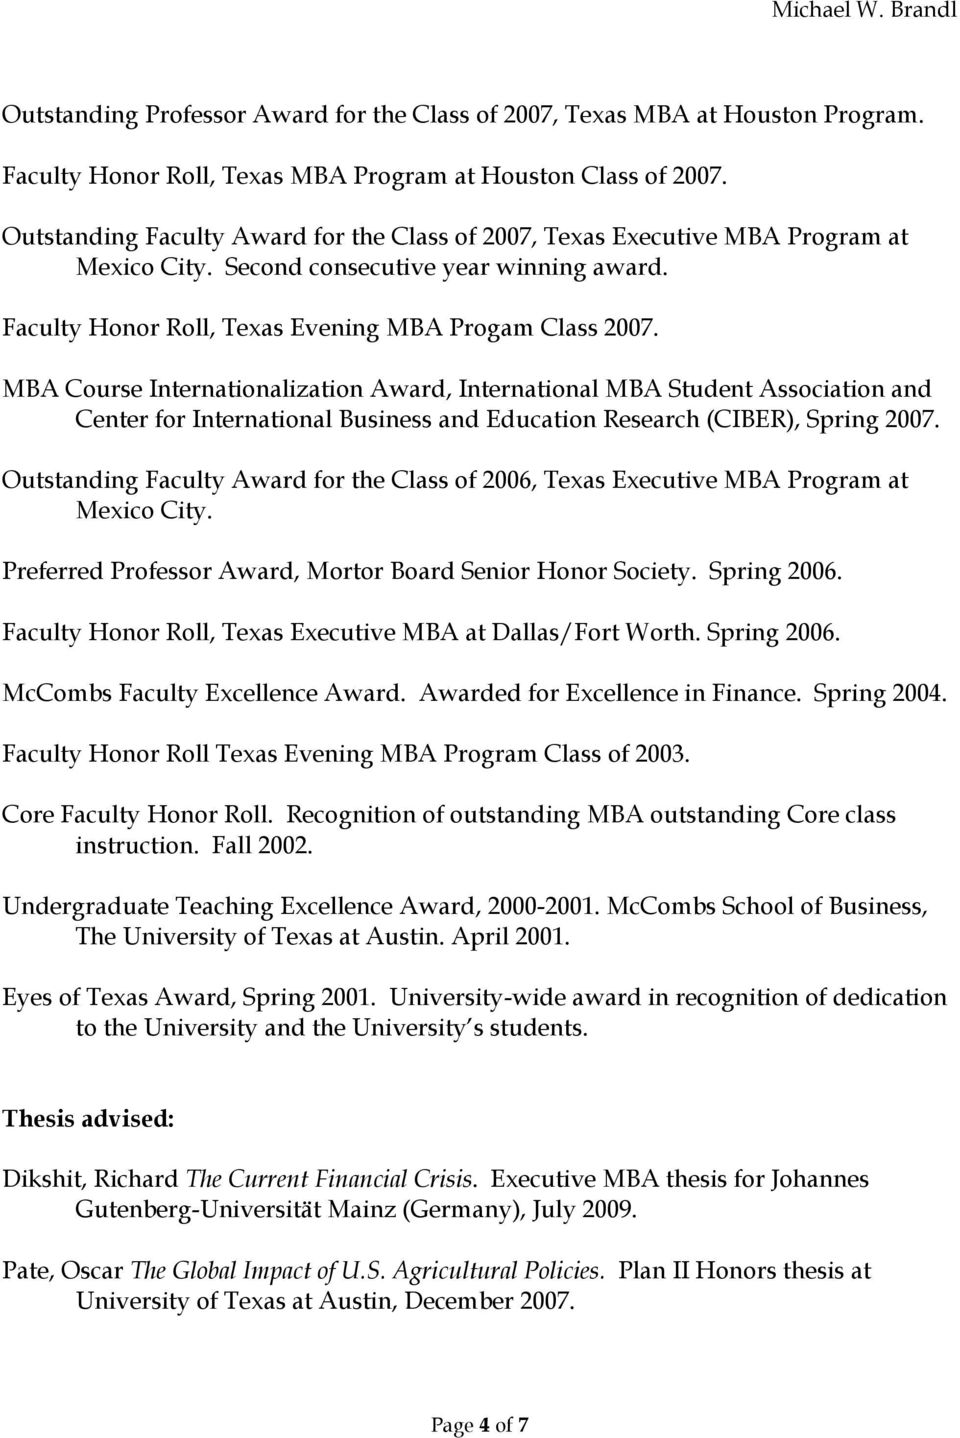 MBA Course Internationalization Award, International MBA Student Association and Center for International Business and Education Research (CIBER), Spring 2007.